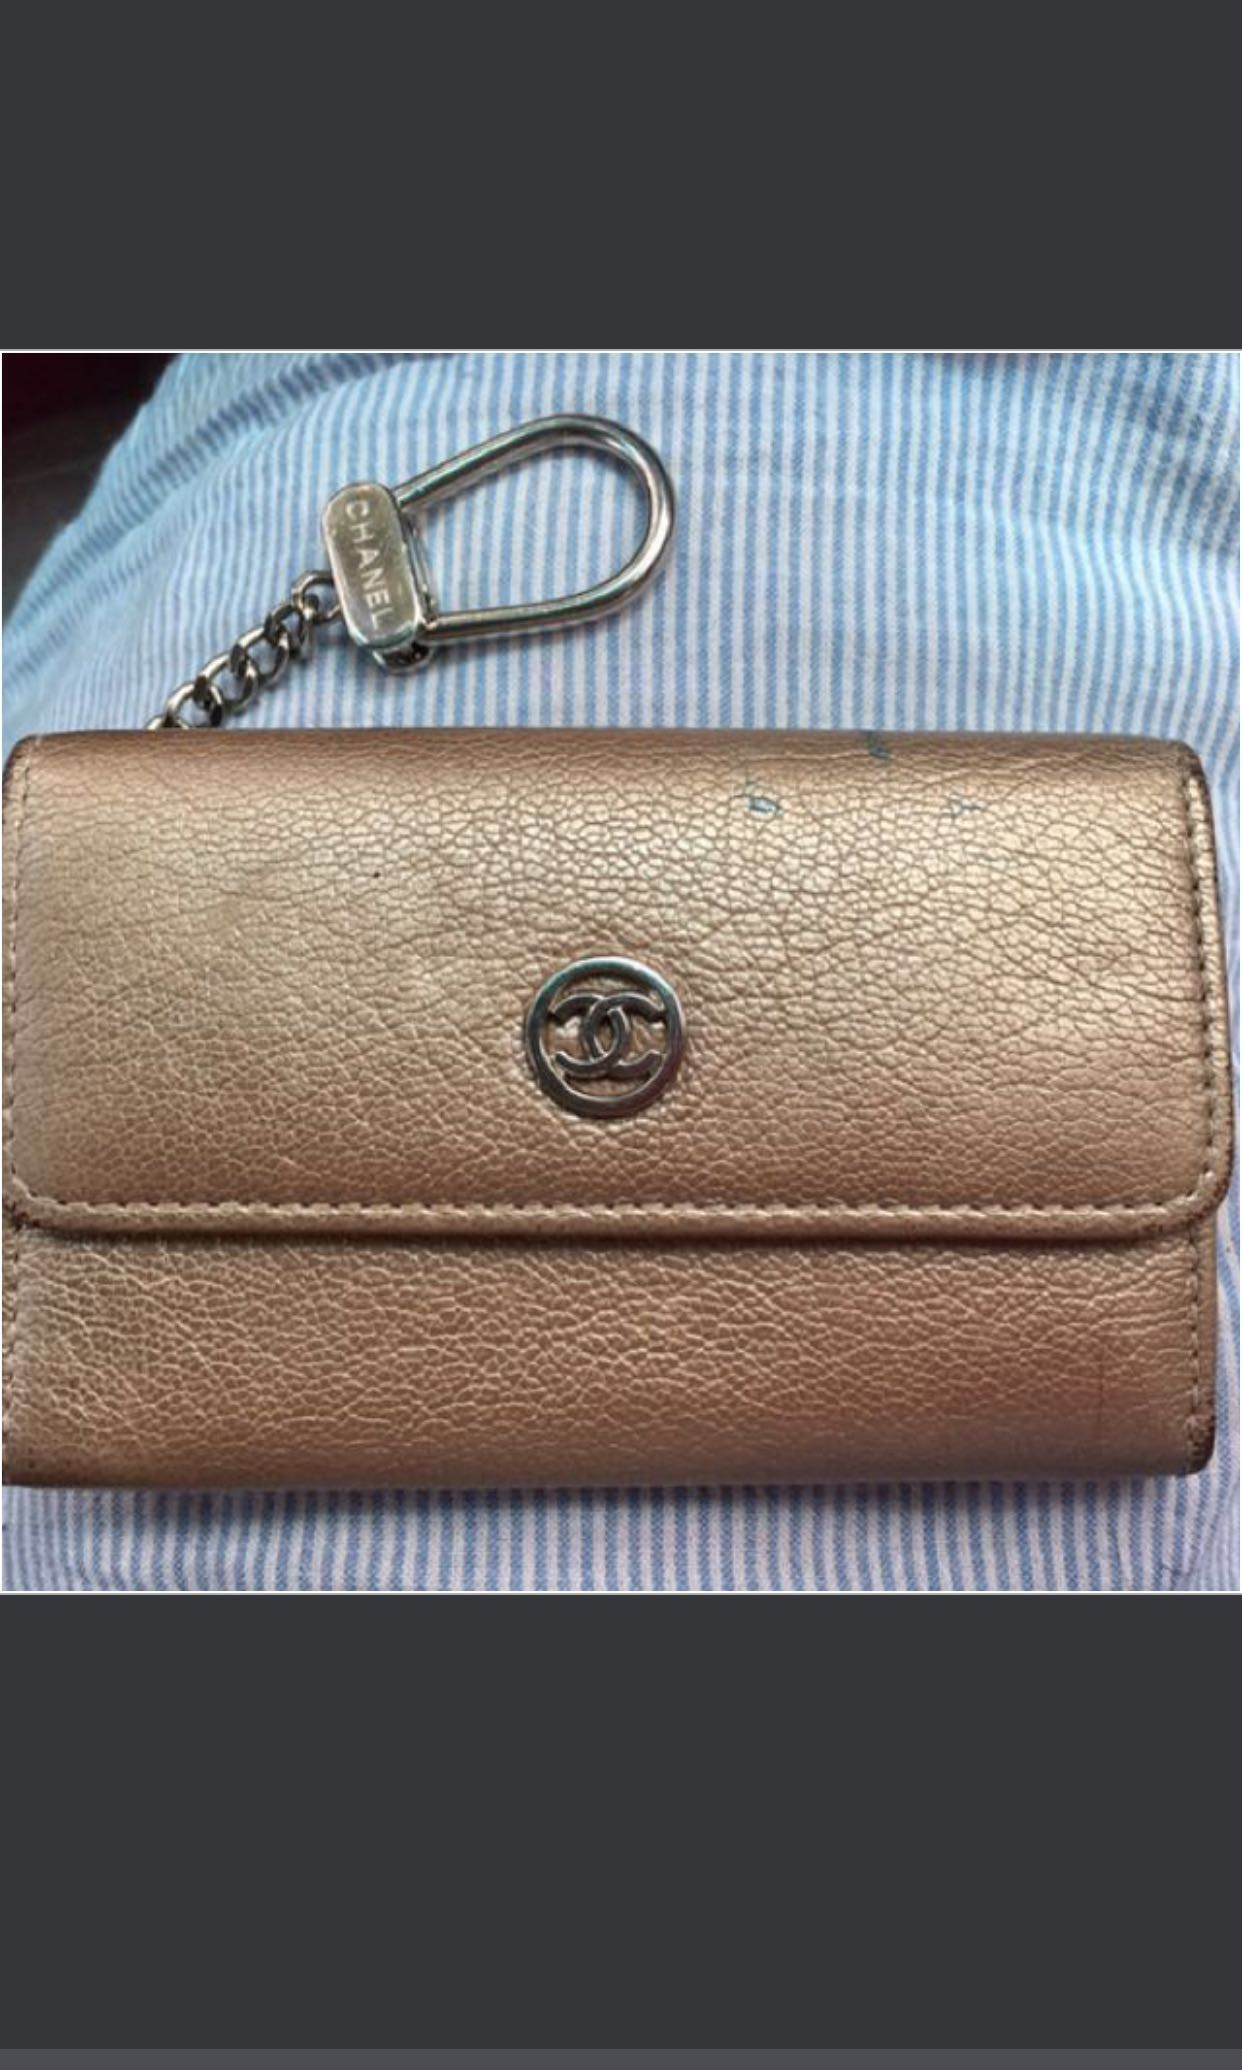 cc69ad20f0c0 Price reduced ☀️Authentic Chanel card holder mini key chain wallet ...